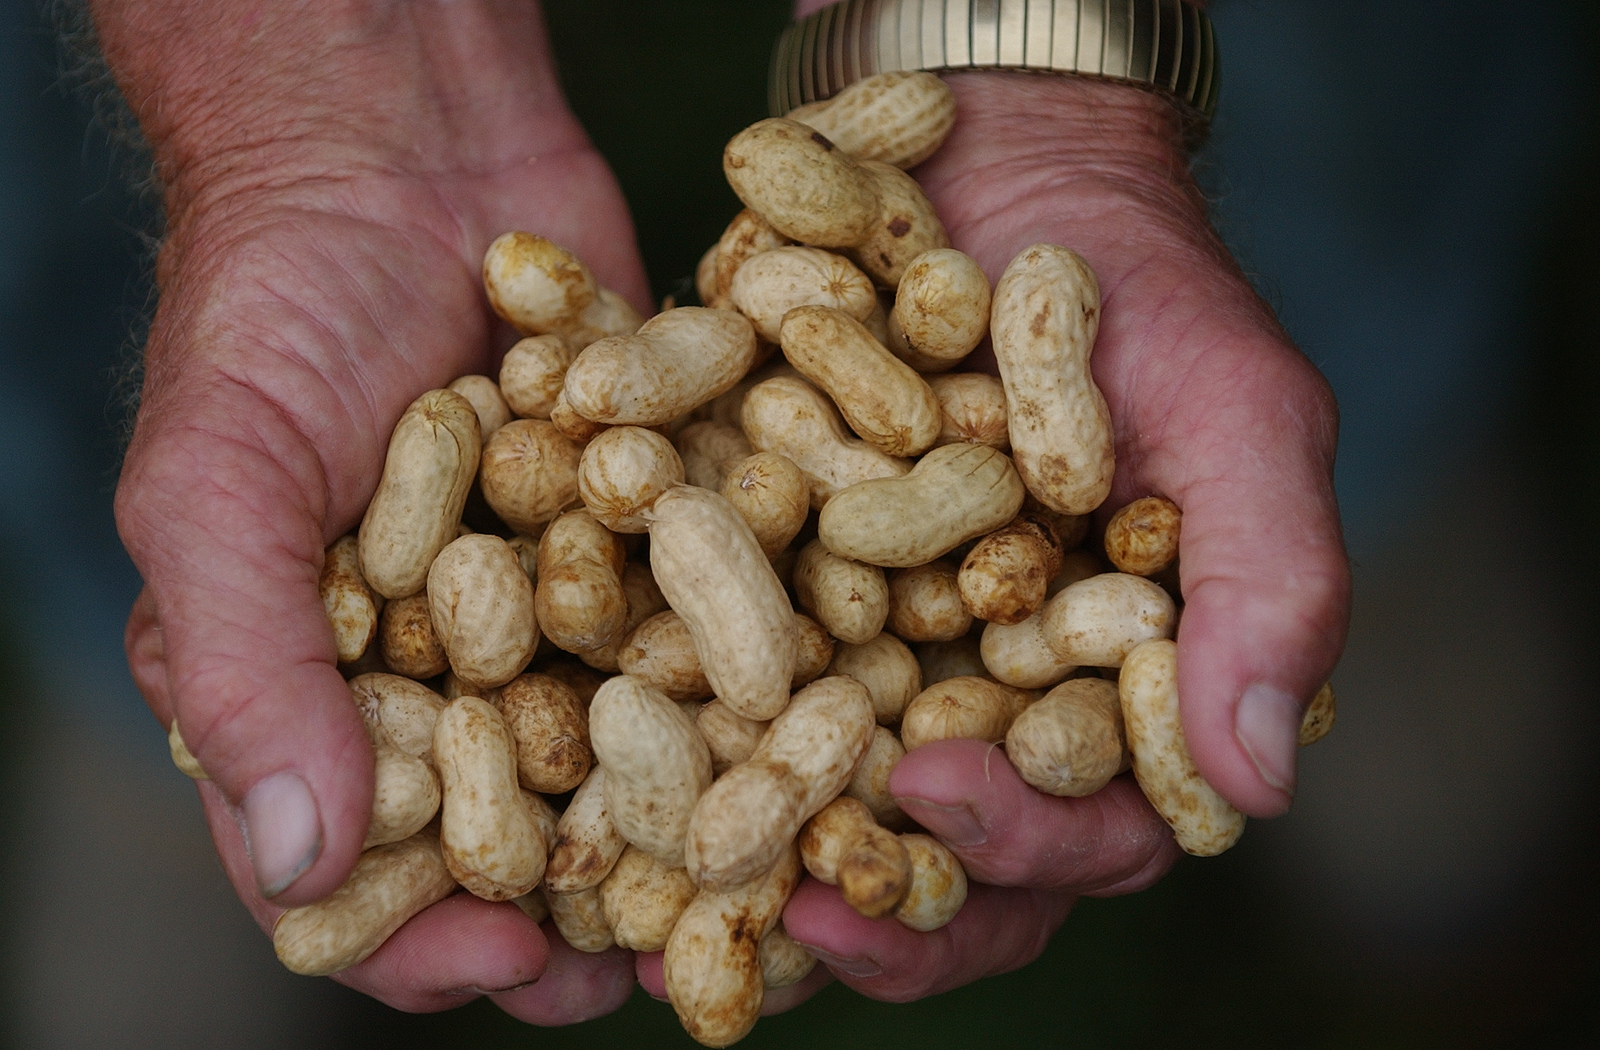 "Georgia is the No. 1 producer of peanuts in the U.S. and Georgia growers grow 50 percent of the nation's total production. University of Georgia Cooperative Extension peanut entomologist Mark Abney says peanuts are one of the most sustainable crops. ""They do not require pollinators, require minimal insecticides, and produce the best quality and yield with the lowest level of input from growers."""